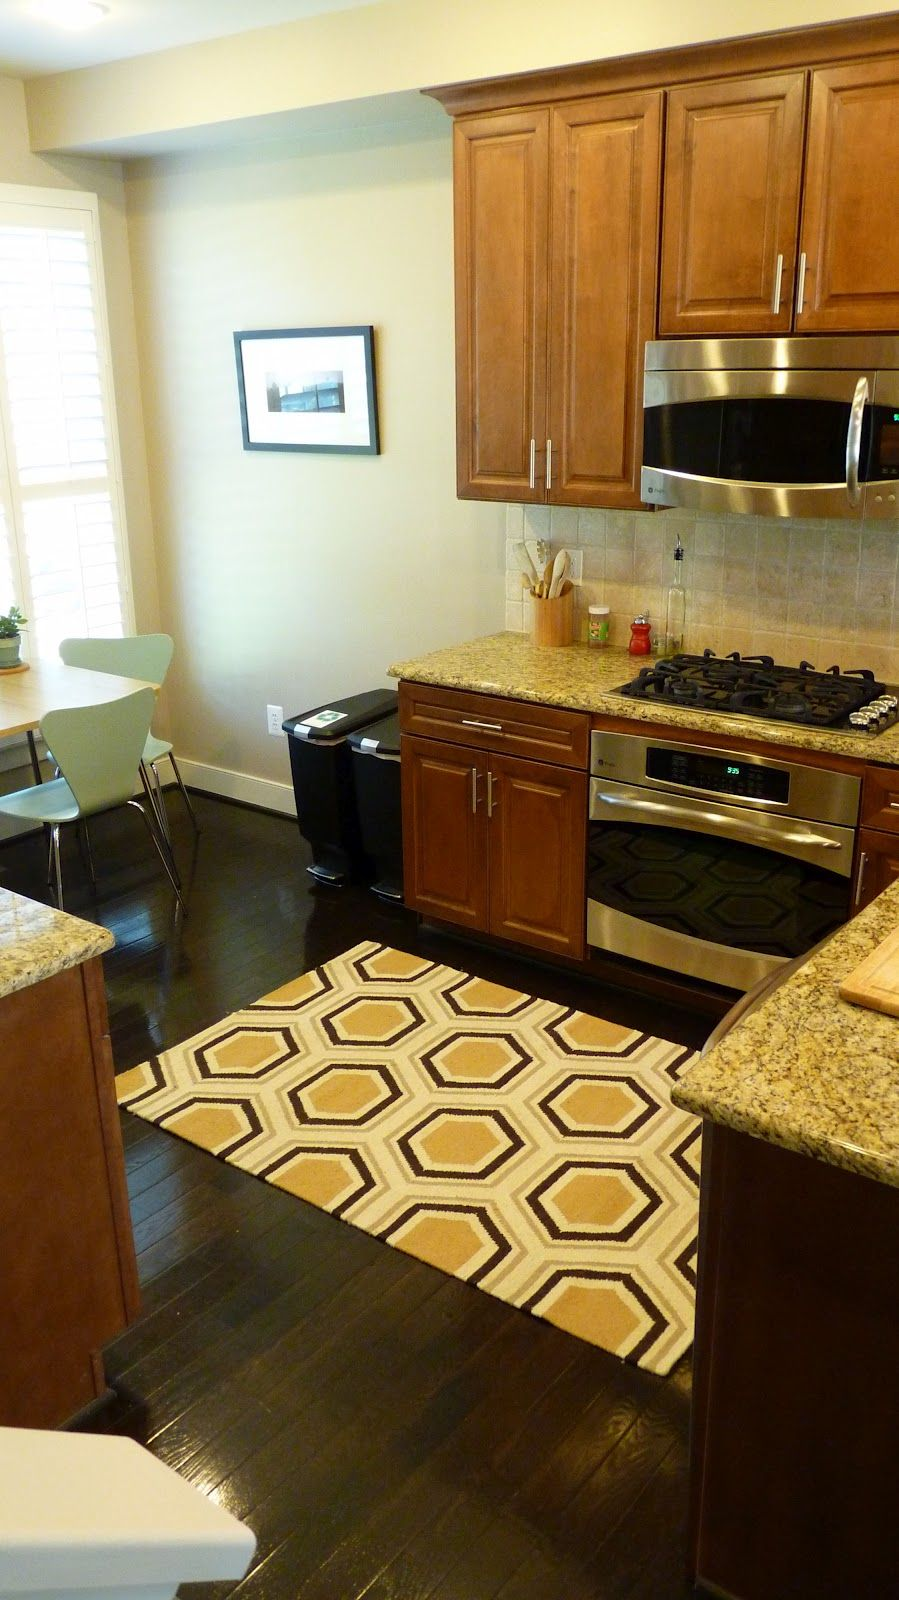 Functional Decorative Kitchen Area Rug